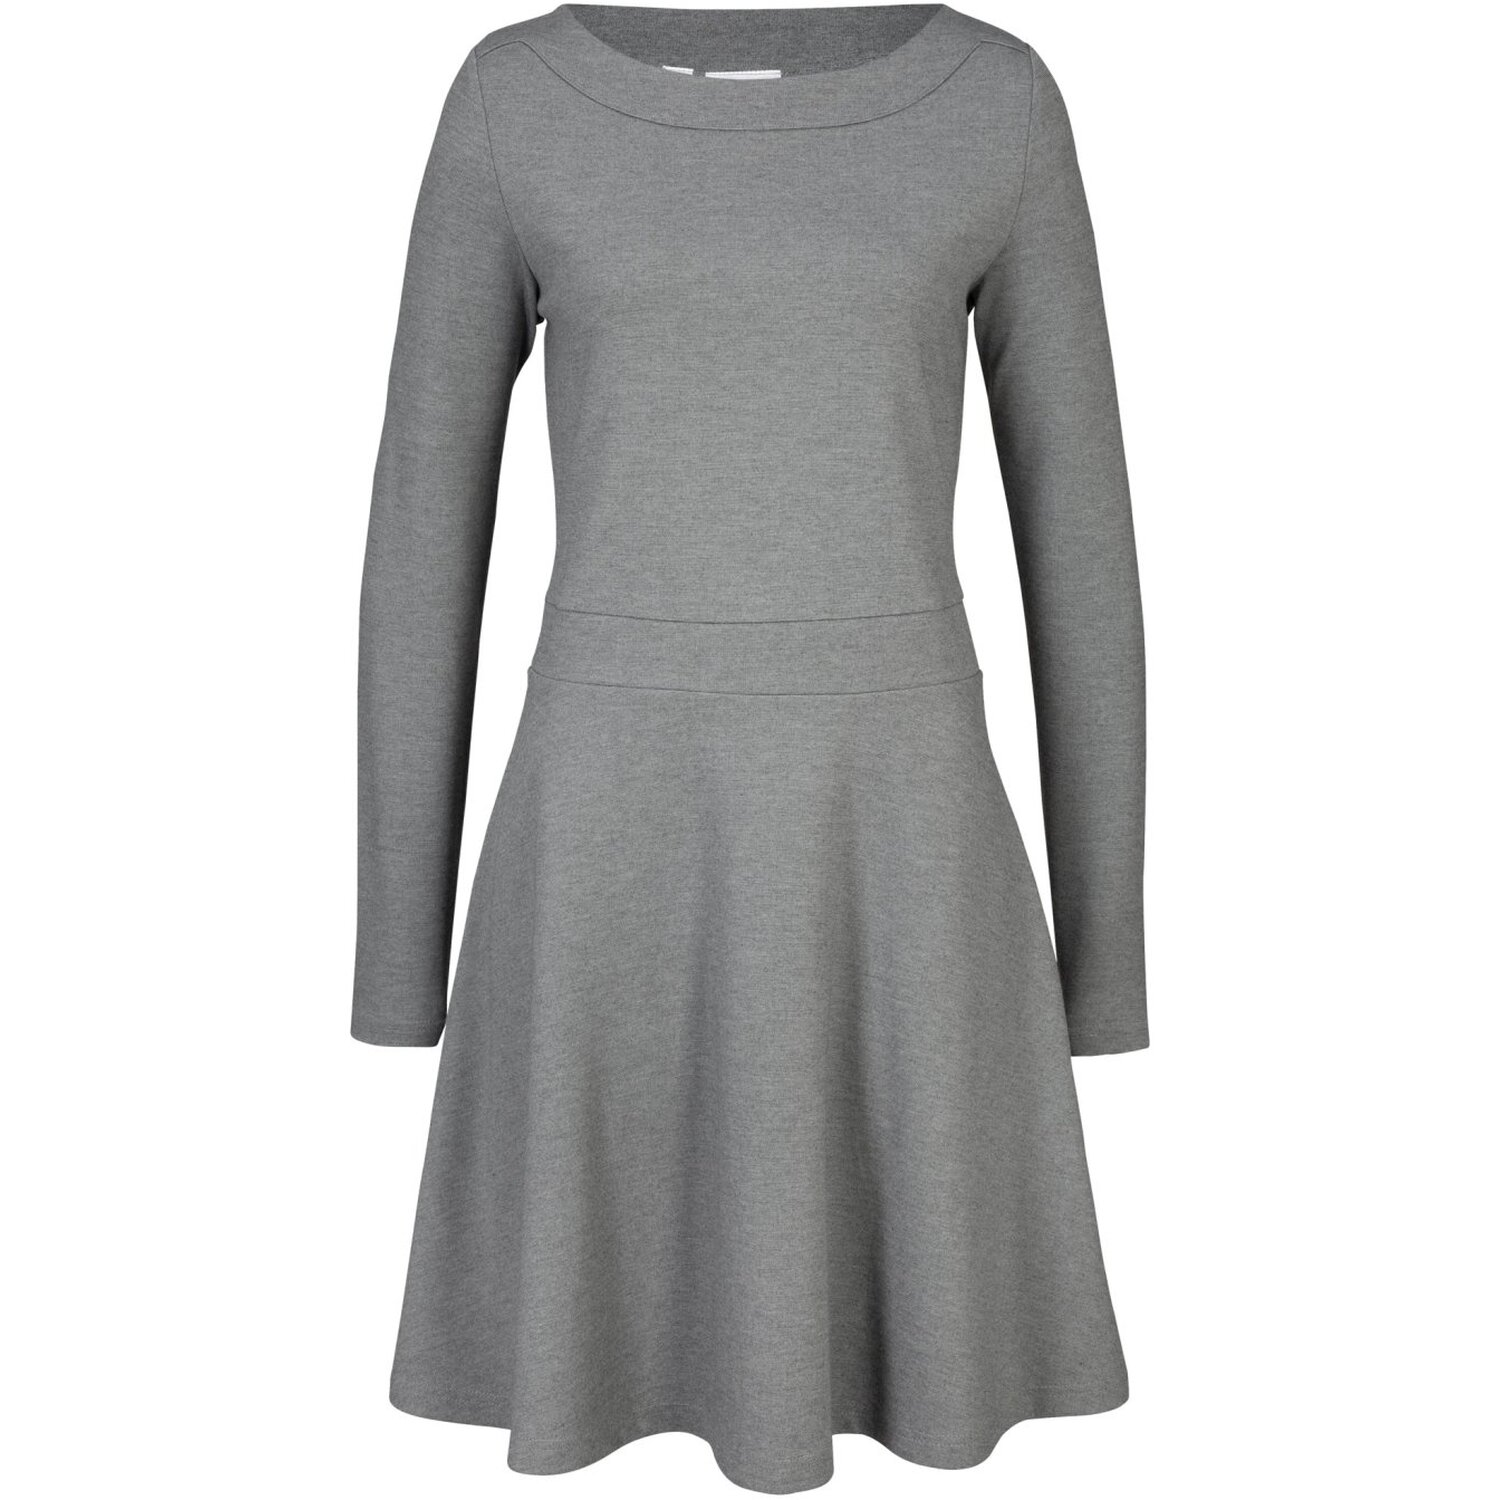 Damen Kleid, in Grau Meliert